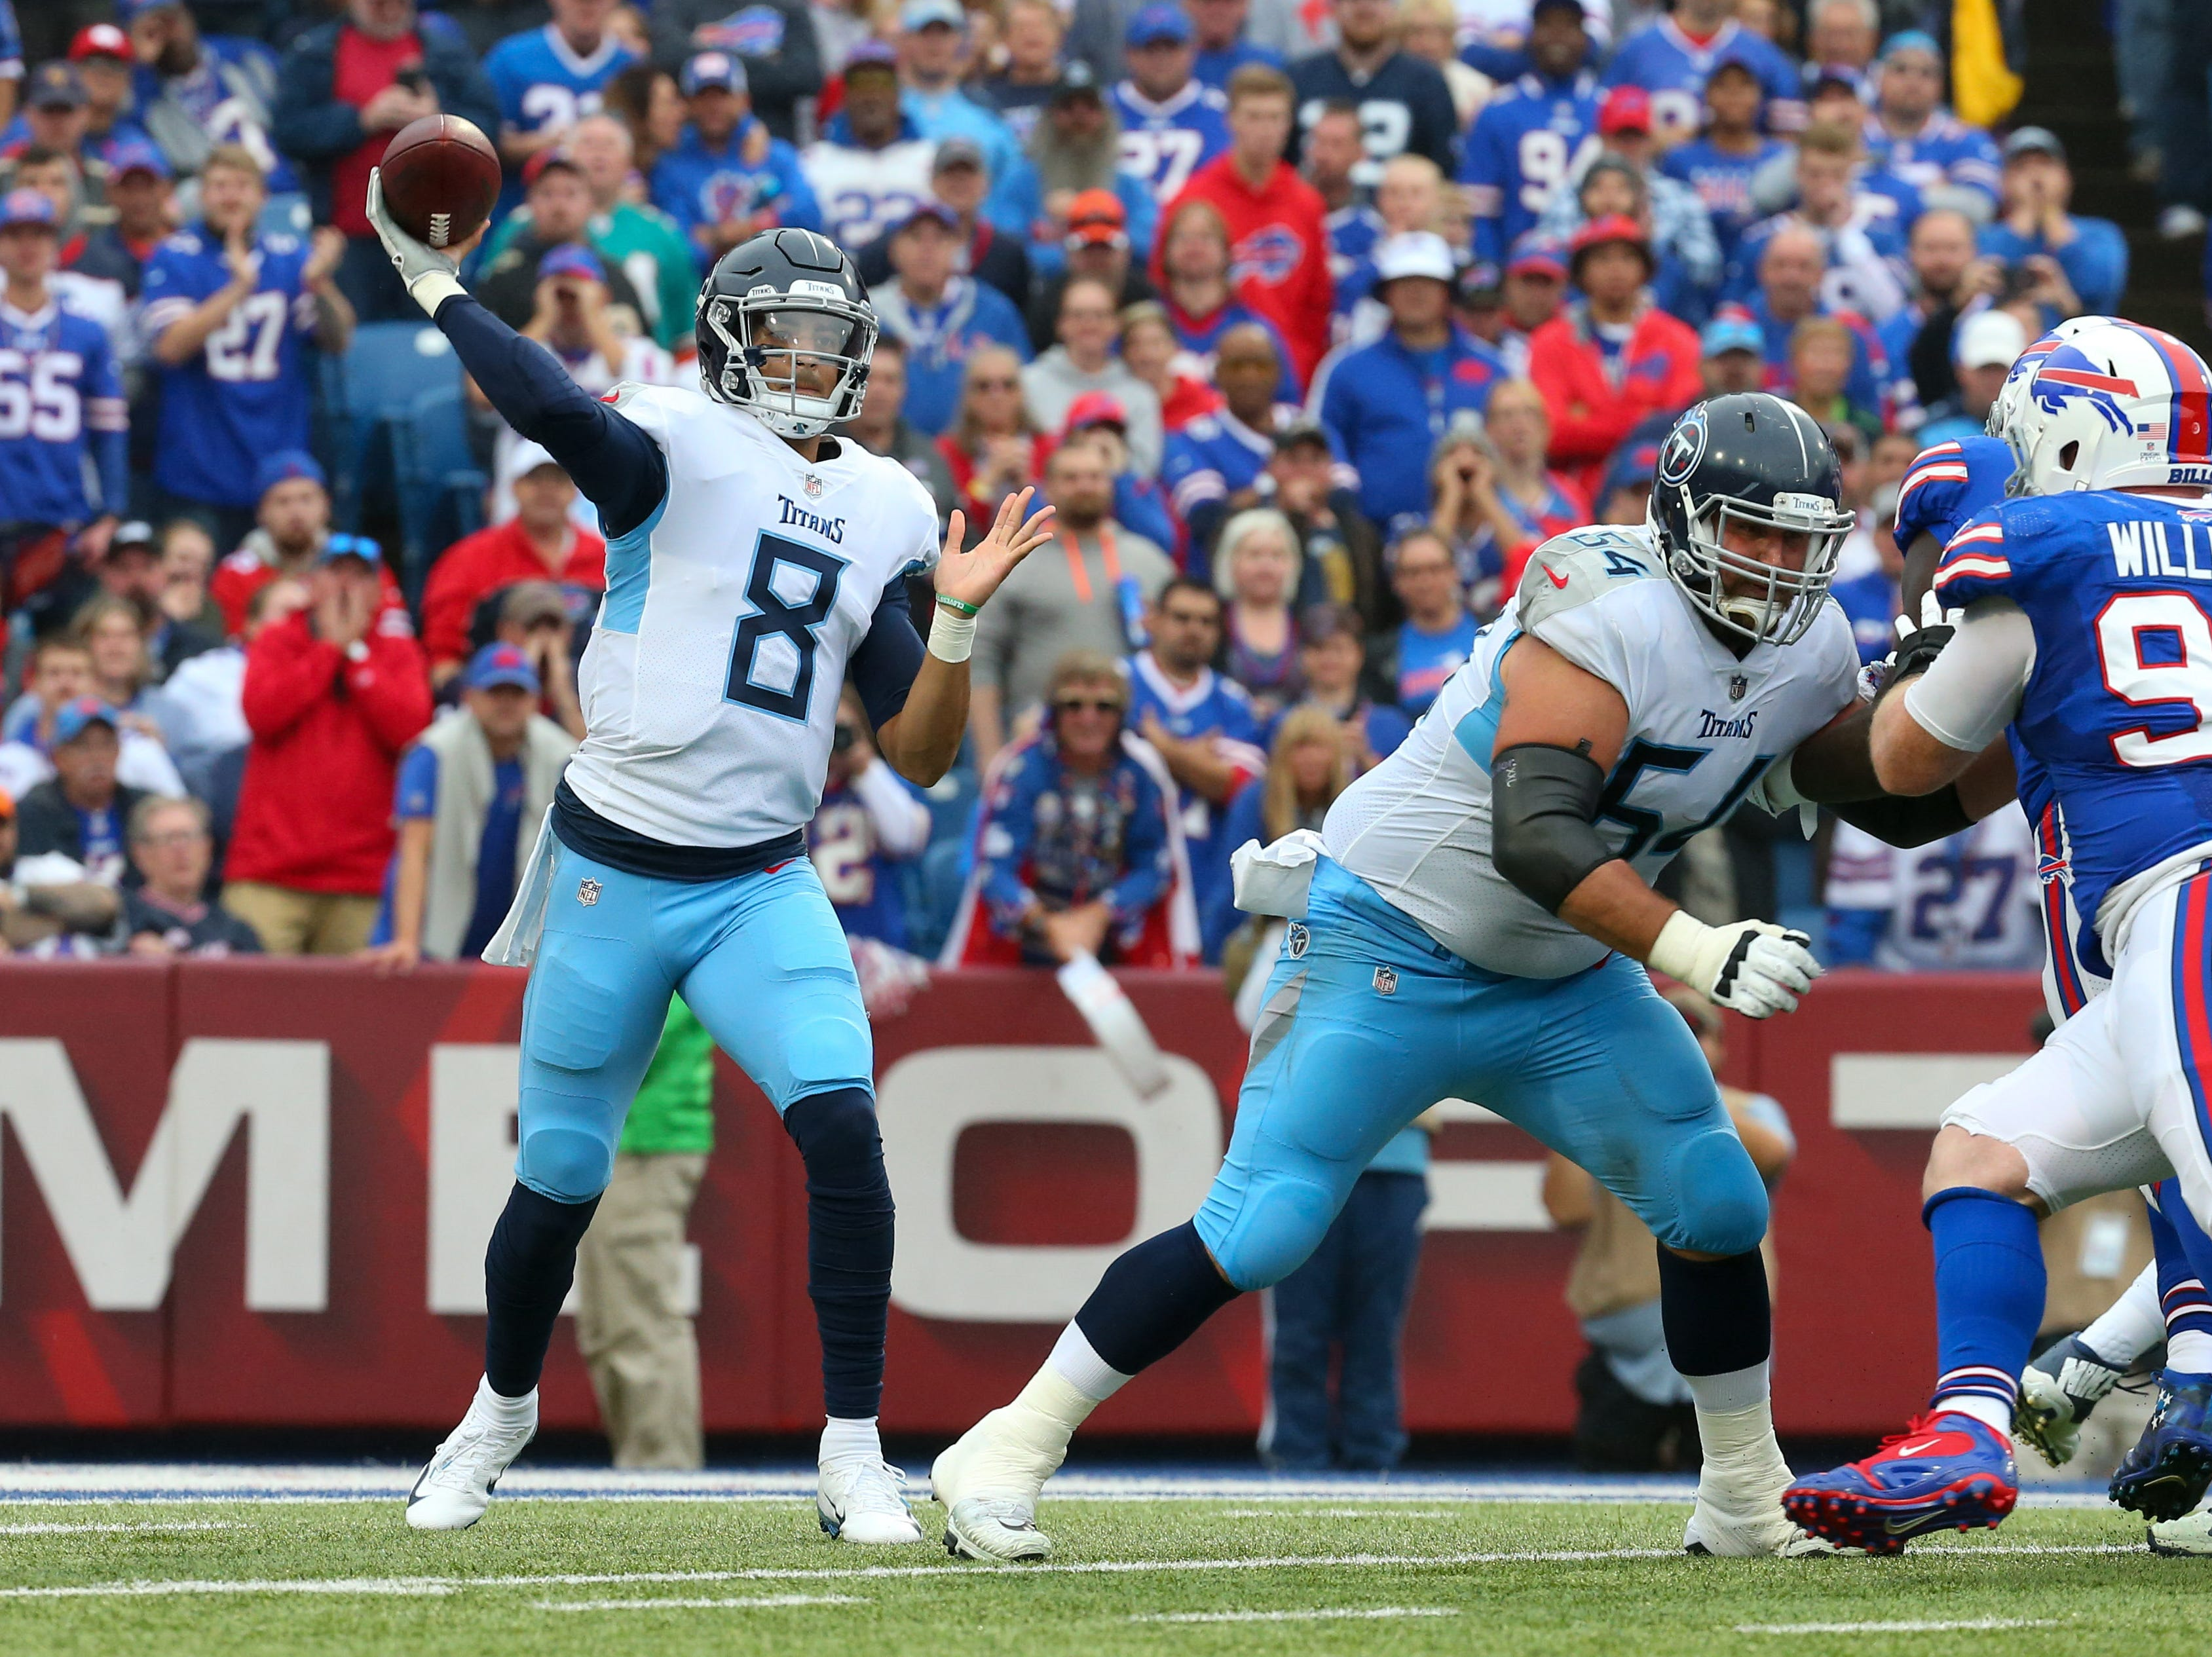 Oct 7, 2018; Orchard Park, NY, USA; Tennessee Titans quarterback Marcus Mariota (8) passes the ball as Buffalo Bills defensive tackle Kyle Williams (95) rushes during the second quarter at New Era Field.